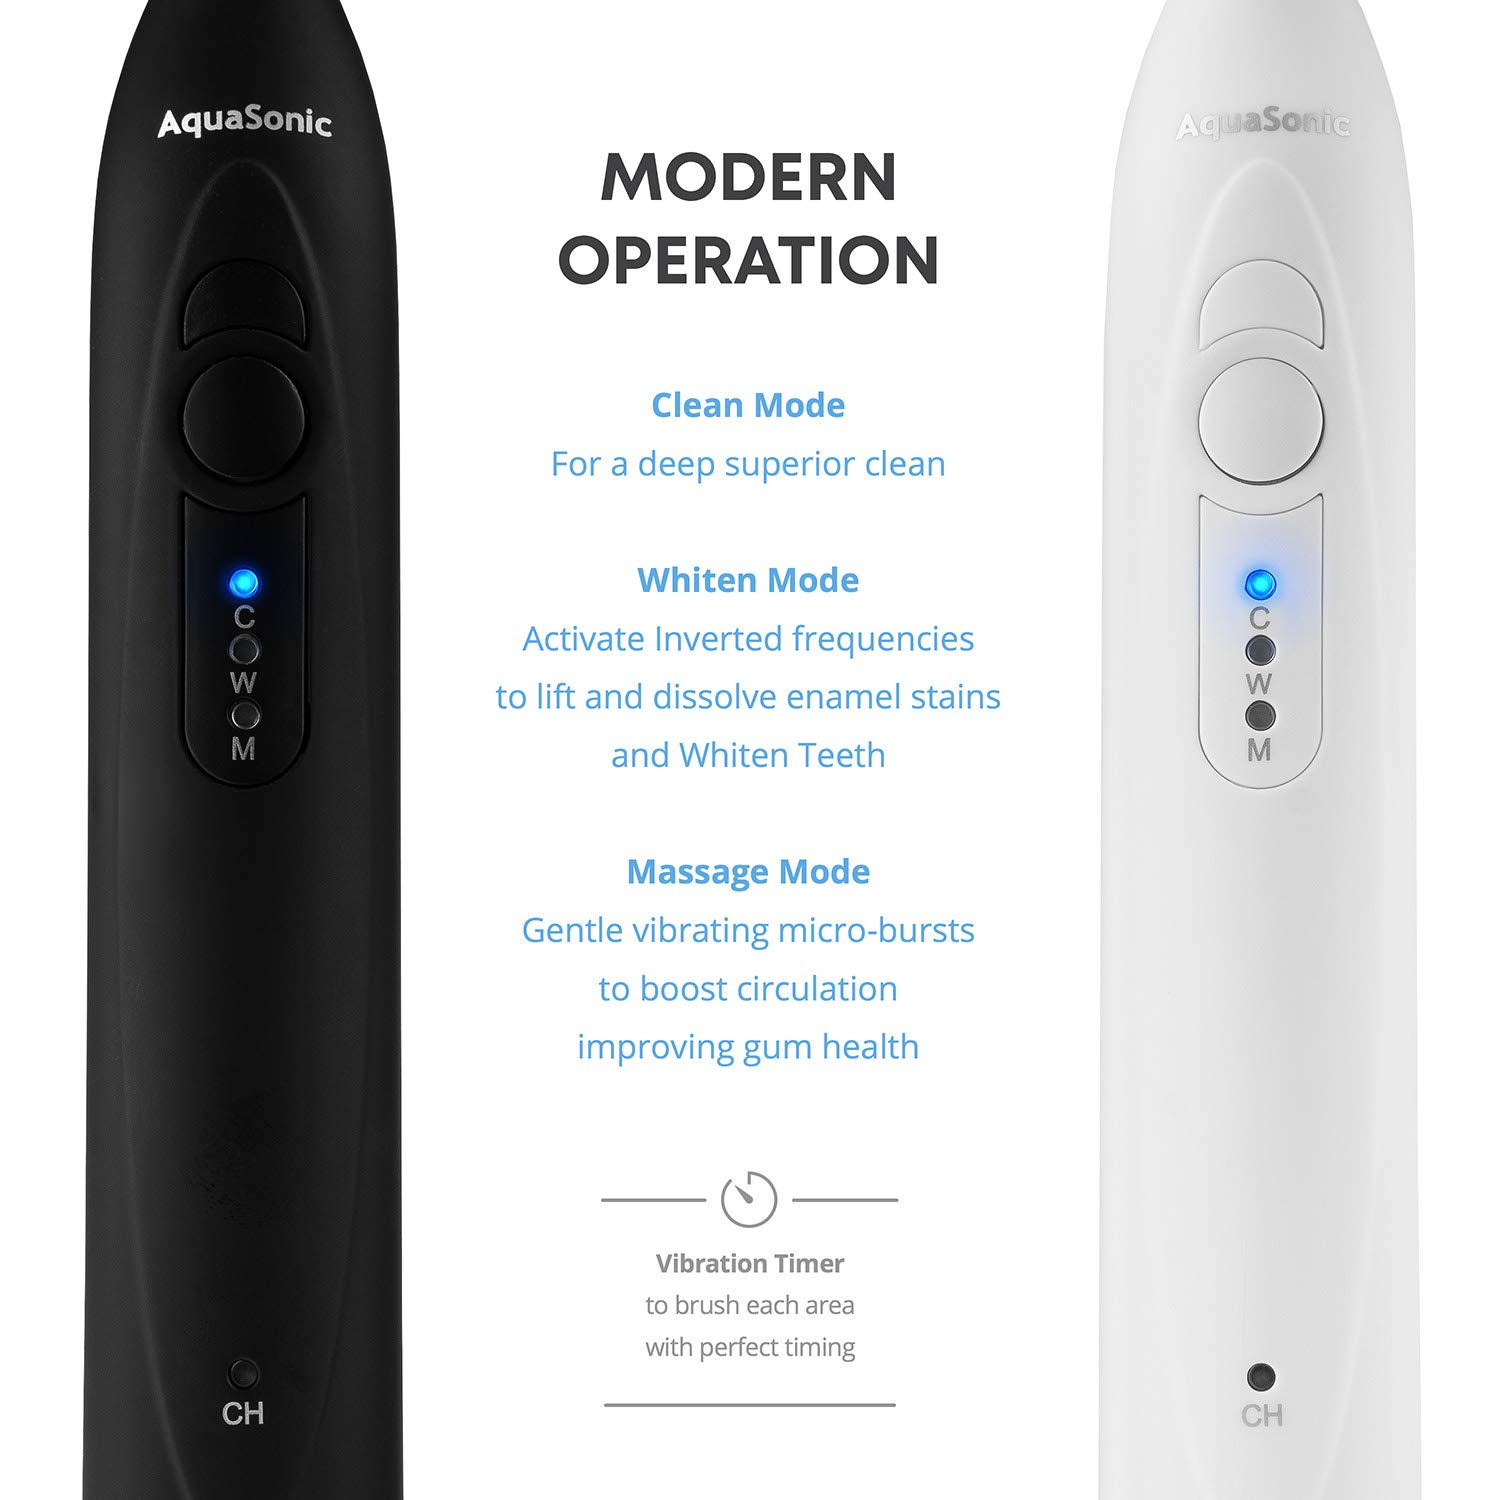 AquaSonic DUO - Dual Handle Ultra Whitening Rechargeable Electric ToothBrushes - 40,000 VPM Motor & Wireless Charging - 3 Modes with Smart Timers - 10 DuPont Brush Heads & 2 Travel Cases Included by Aquasonic (Image #3)